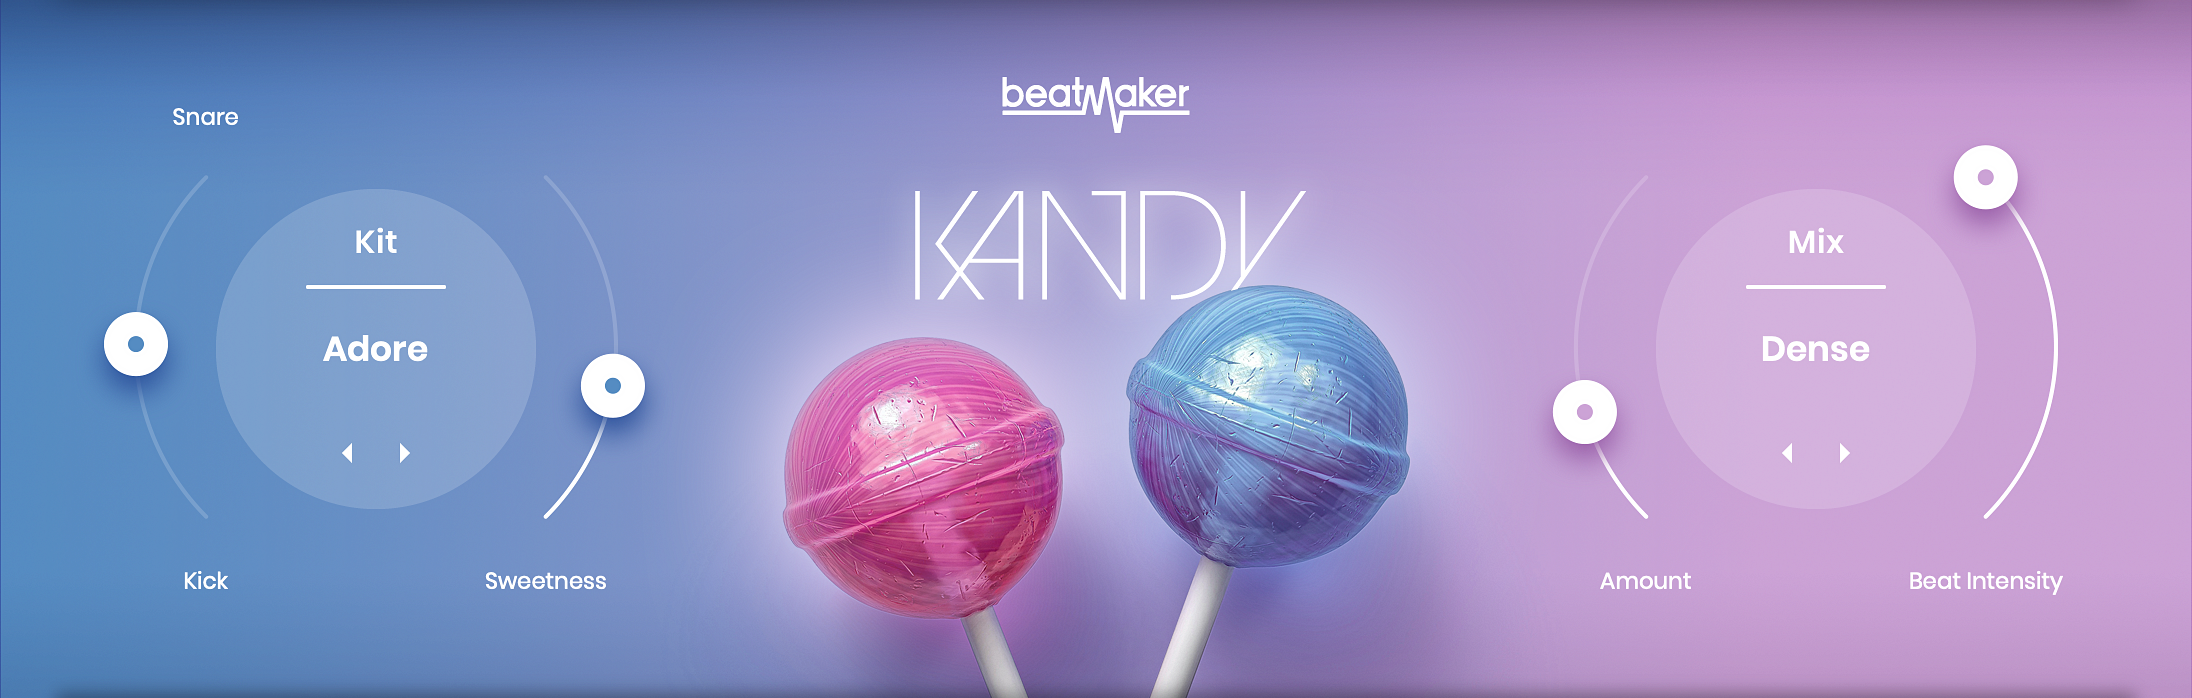 beatmaker-kandy-gui-uncompressed.png